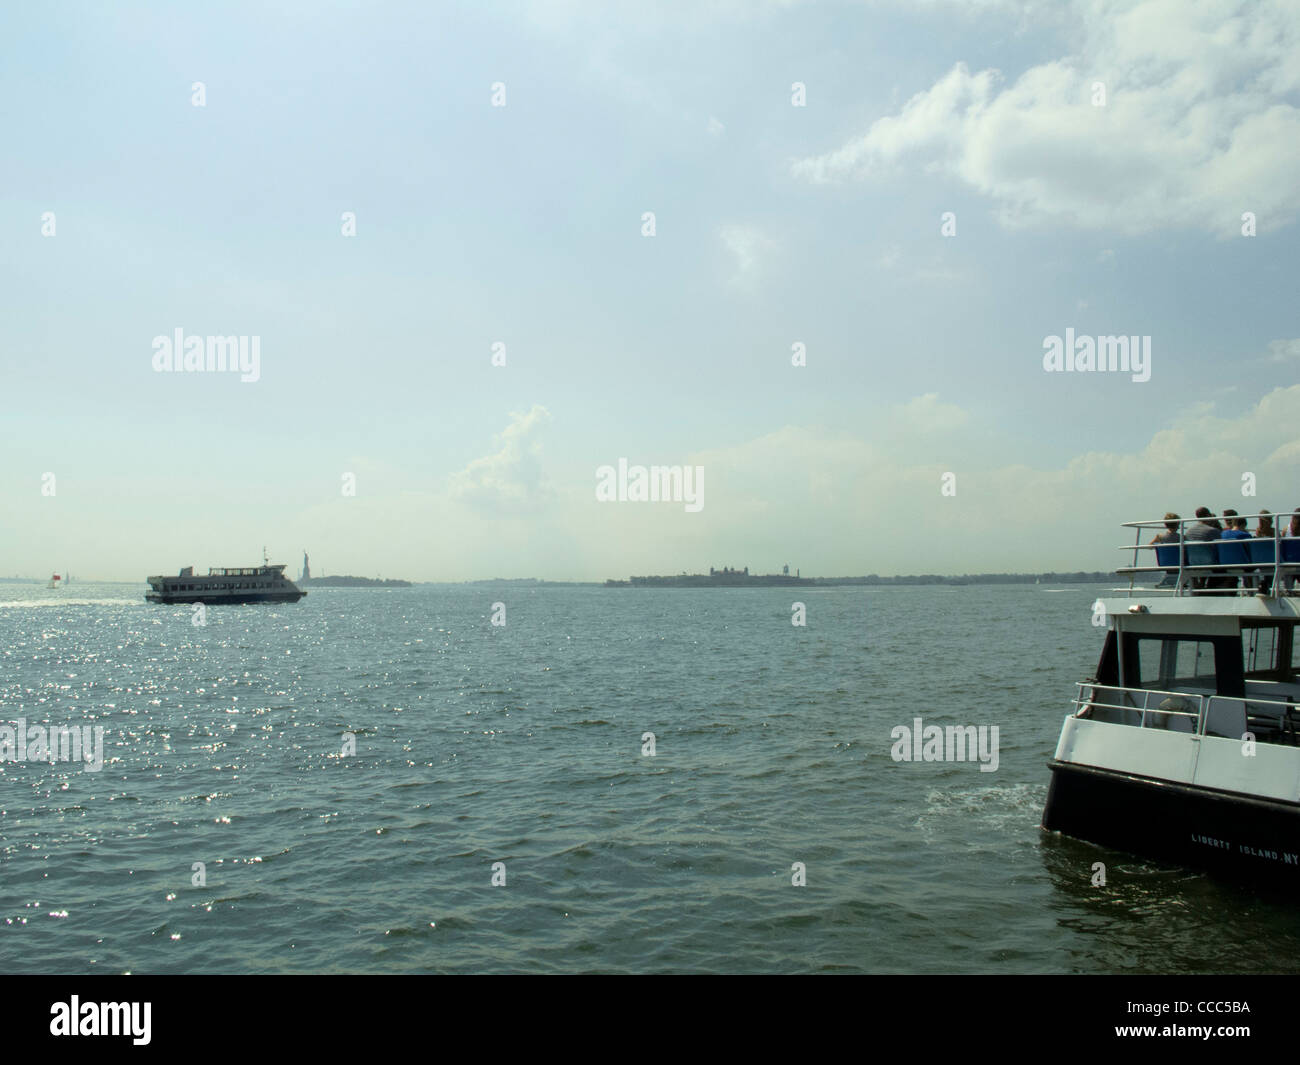 summer ferry ride to governors island, across new york harbor, statue of liberty in back ground. - Stock Image